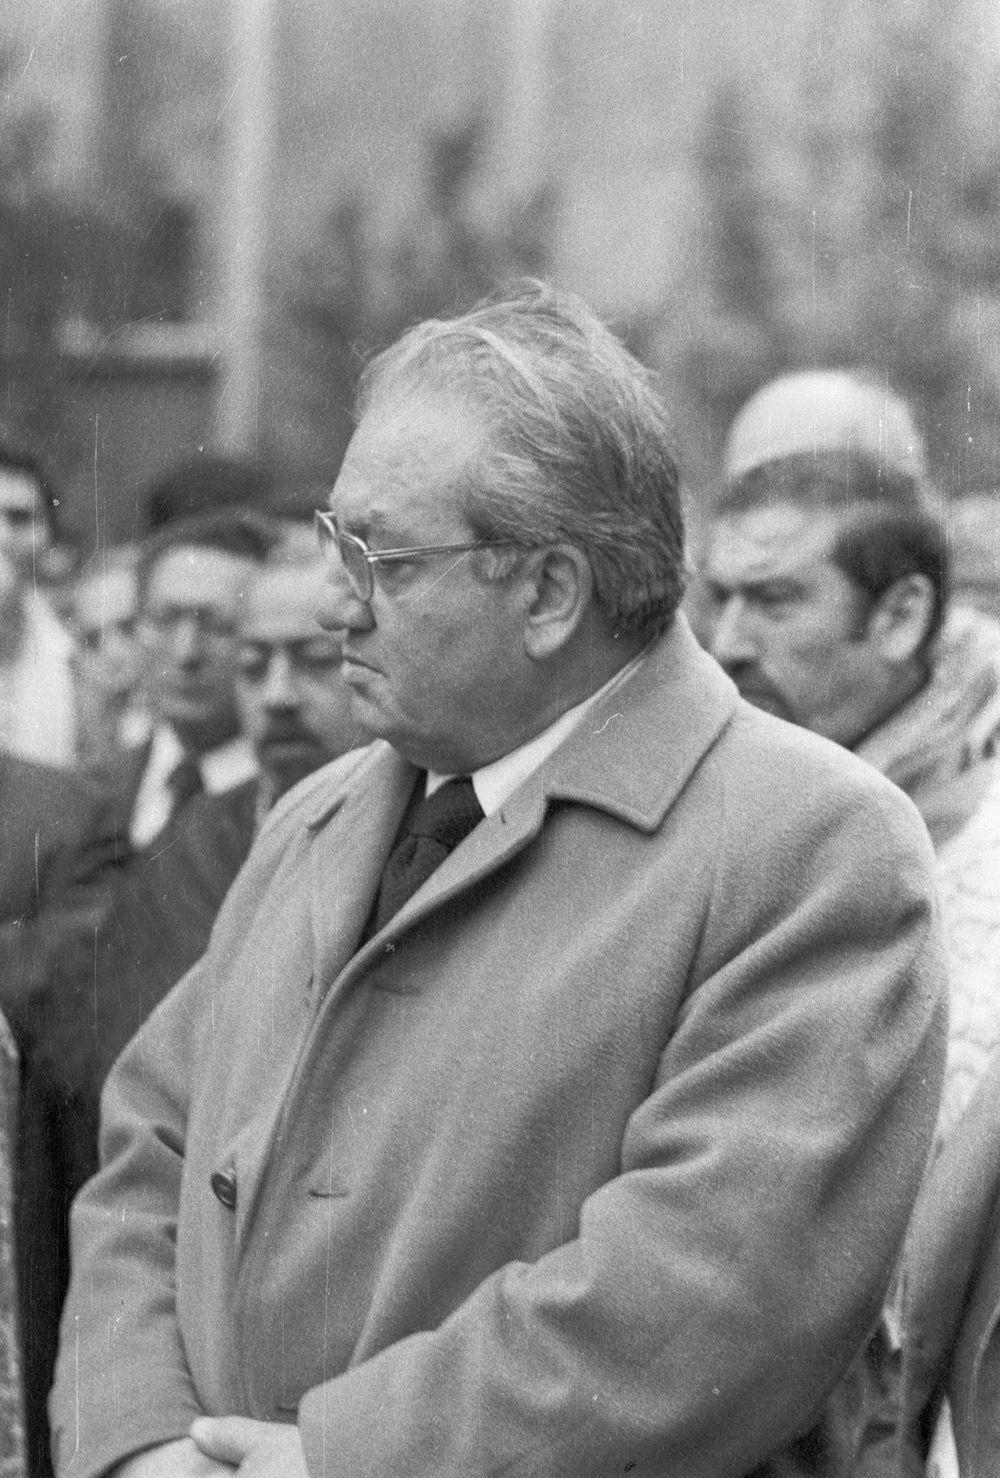 coll-vheloyan-defile-24avril1976-0007 - Année: 1976